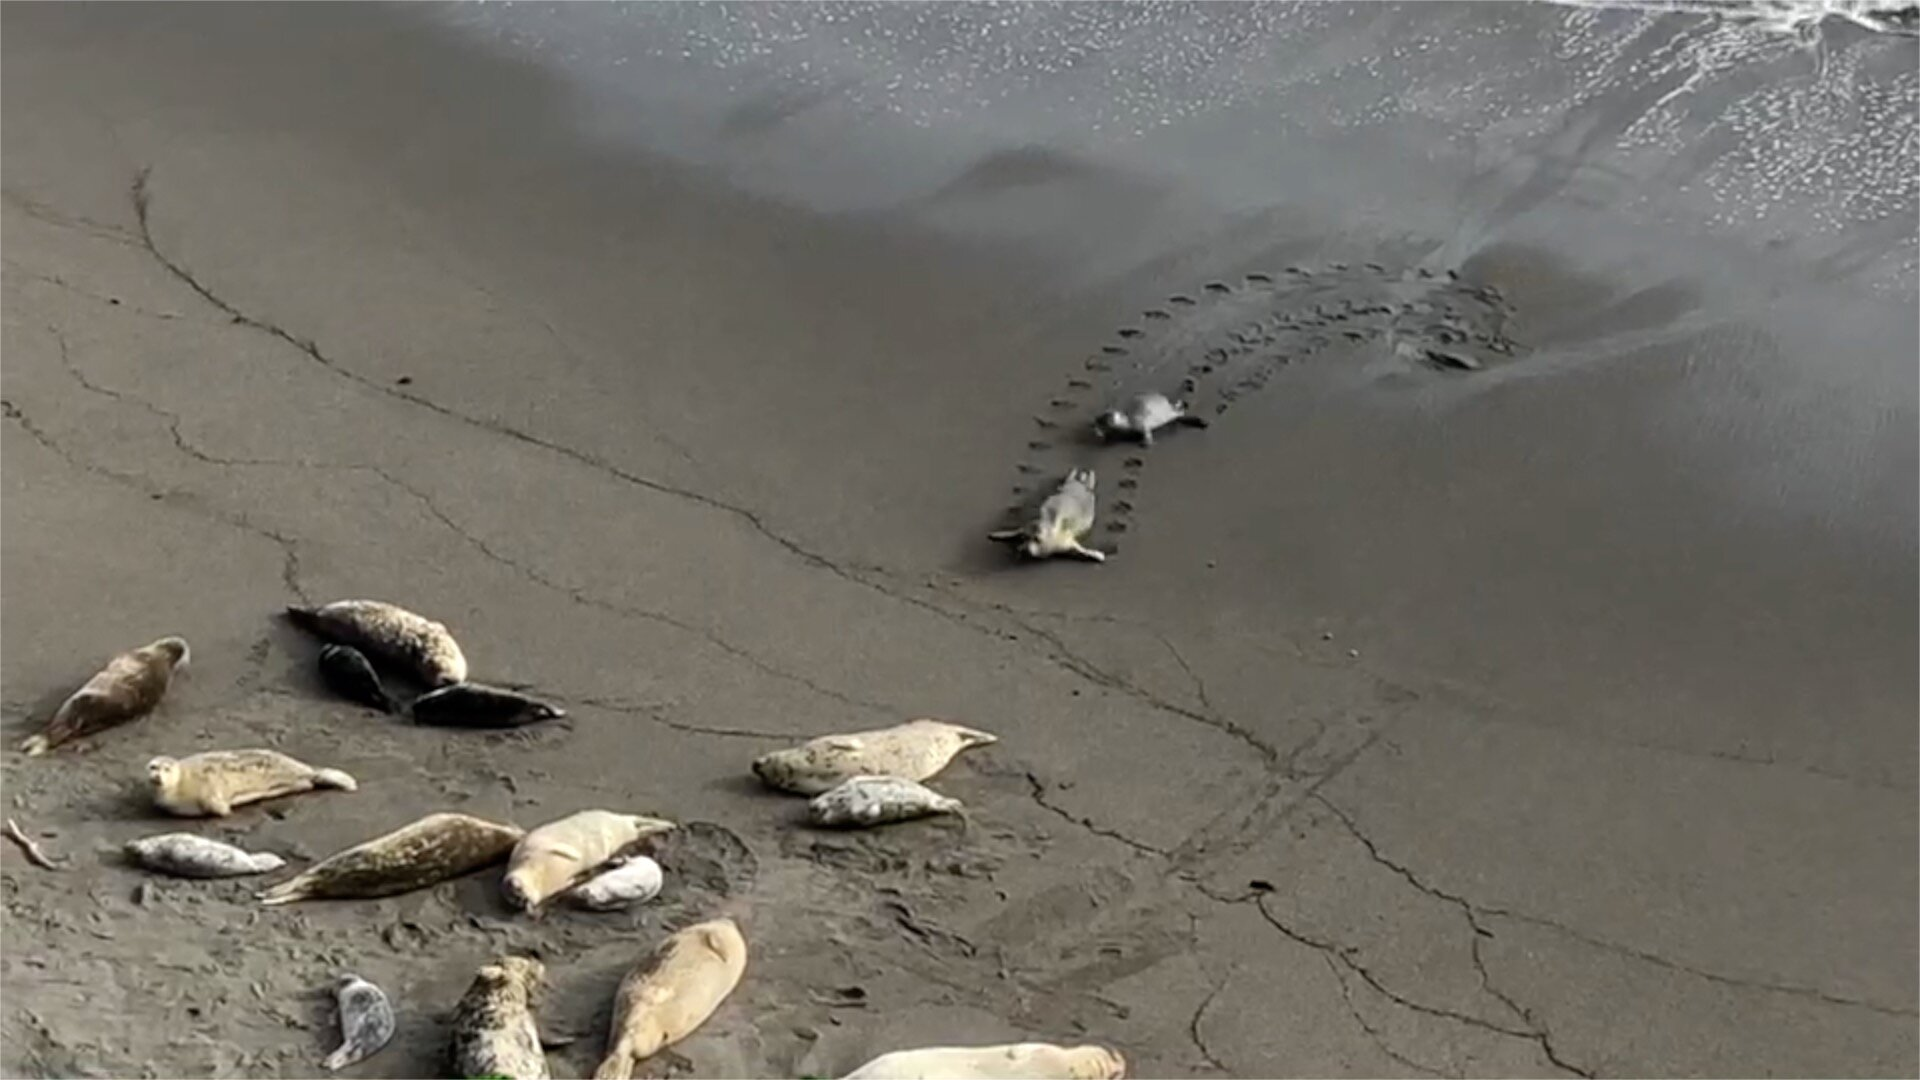 Watch this one-minute   video   taken on a beach 500 yards from Casa Pacis (Courtesy of Oana Marcu, September 2019)